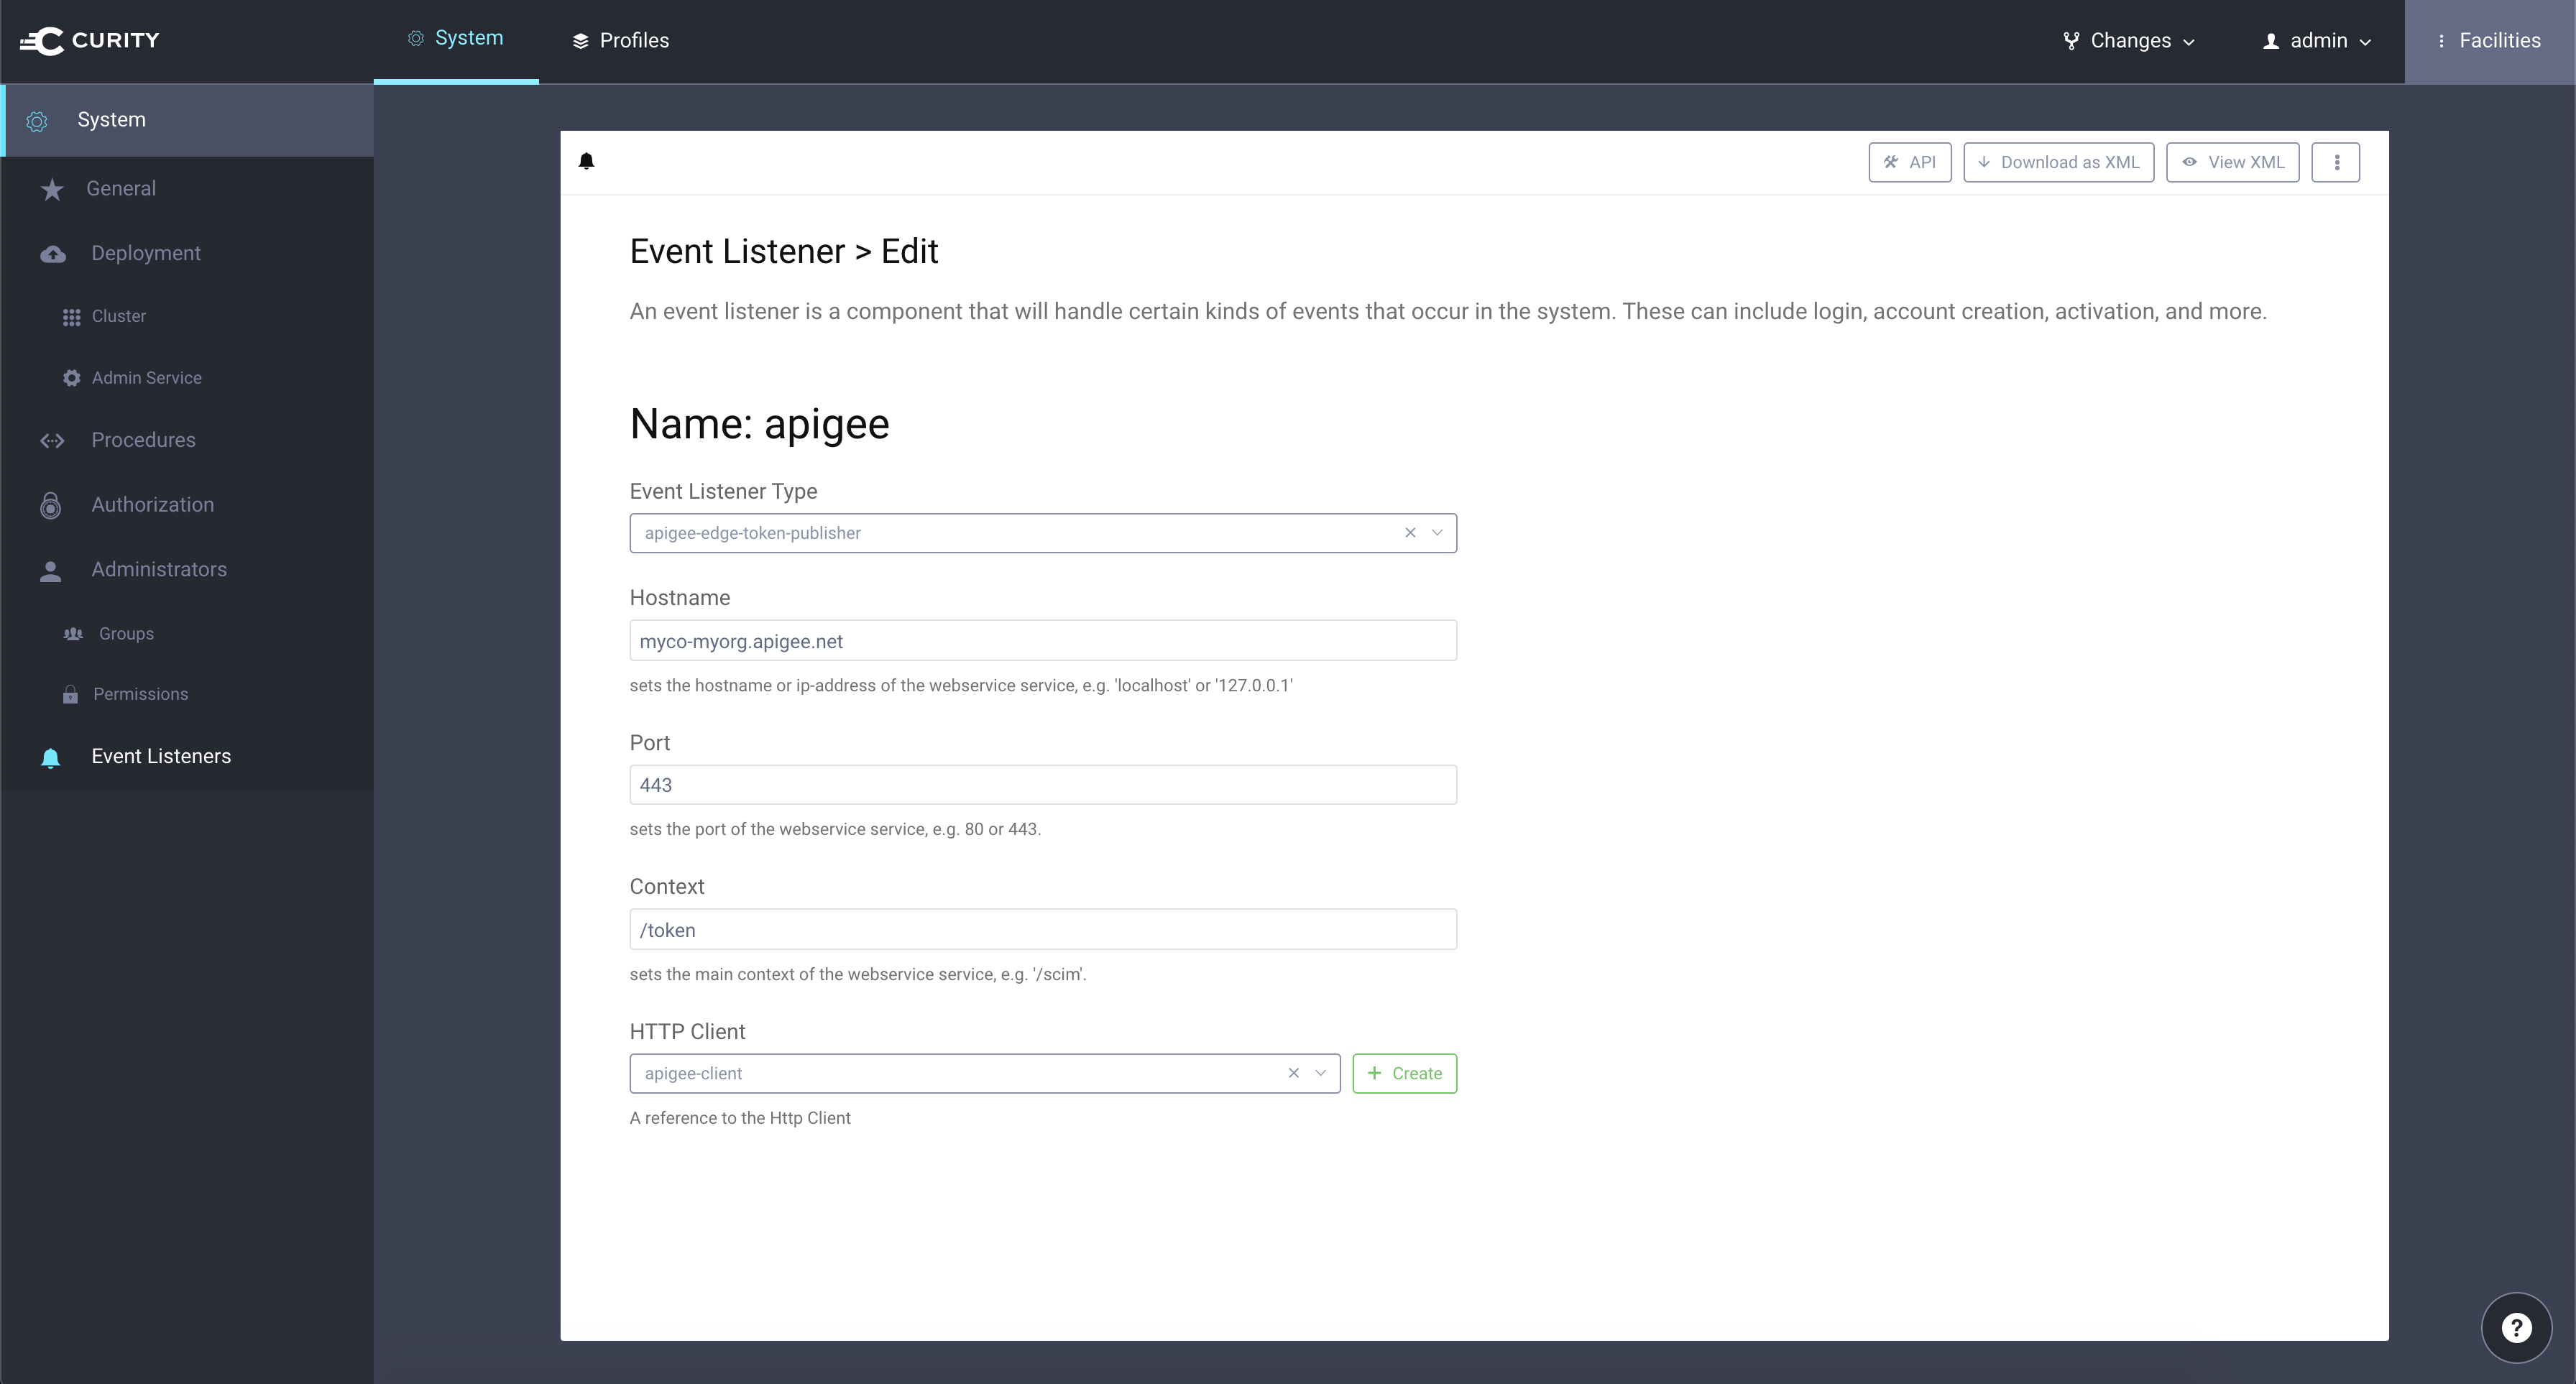 Configuring an Event Listener in the Curity Admin UI